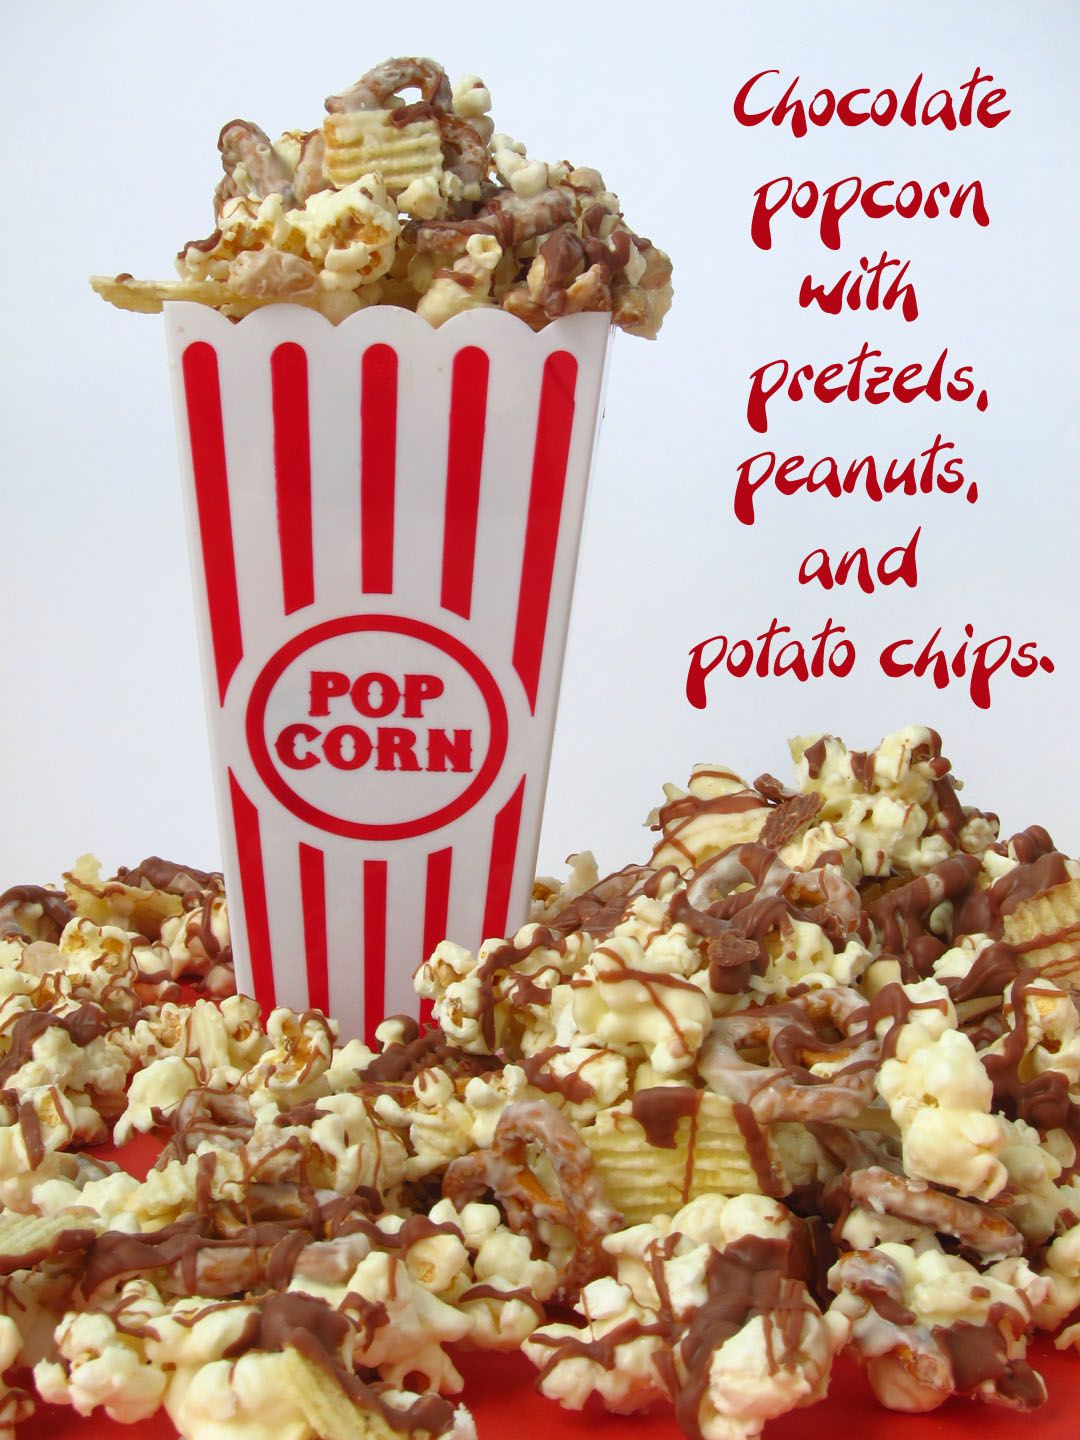 Hungry Happenings: Crunchy & Creamy Chocolate Popcorn with Peanuts, Pretzels, and Chips.